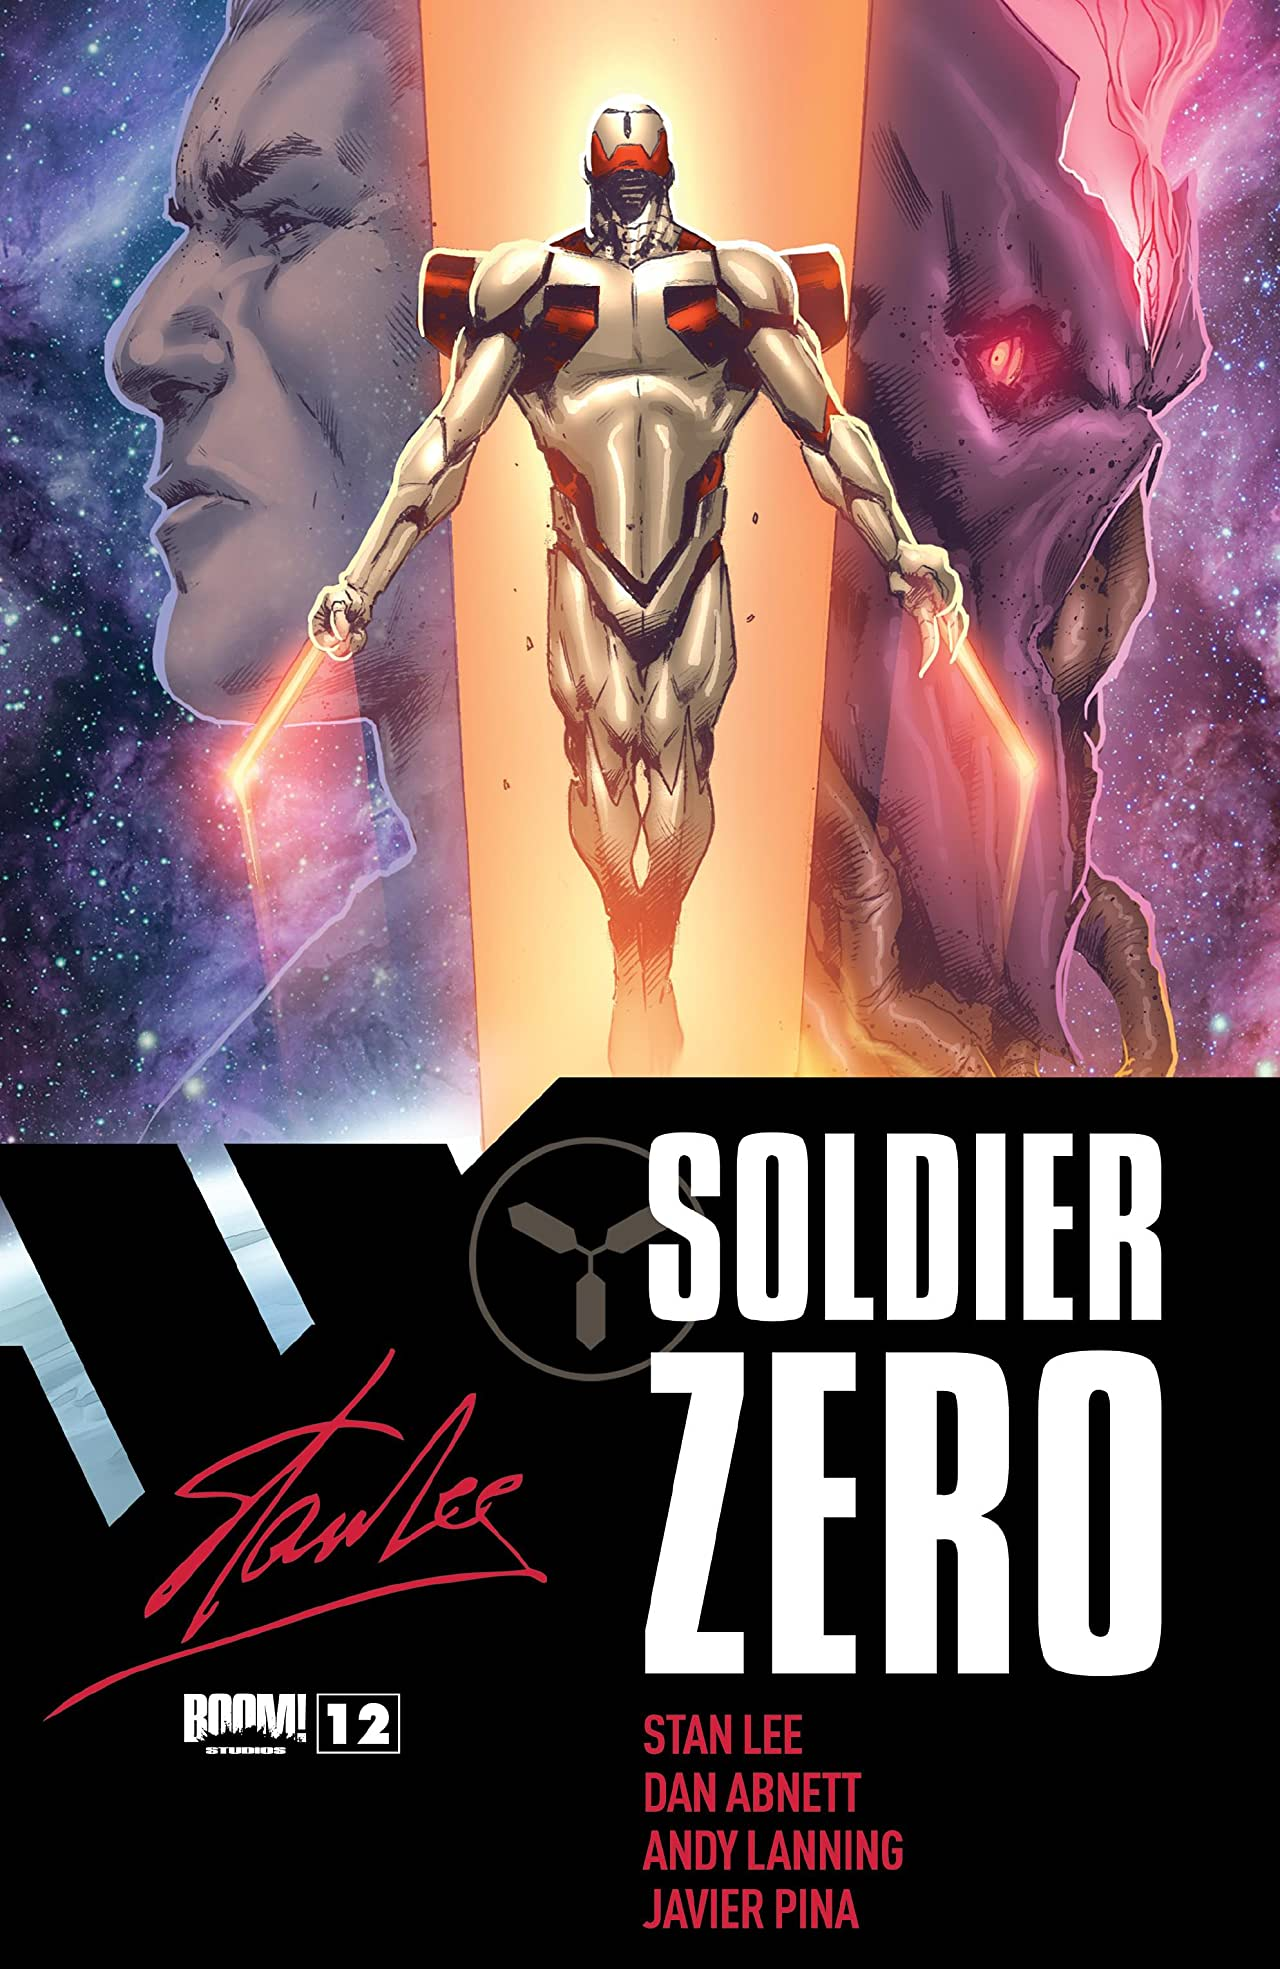 Stan Lee's Soldier Zero #12